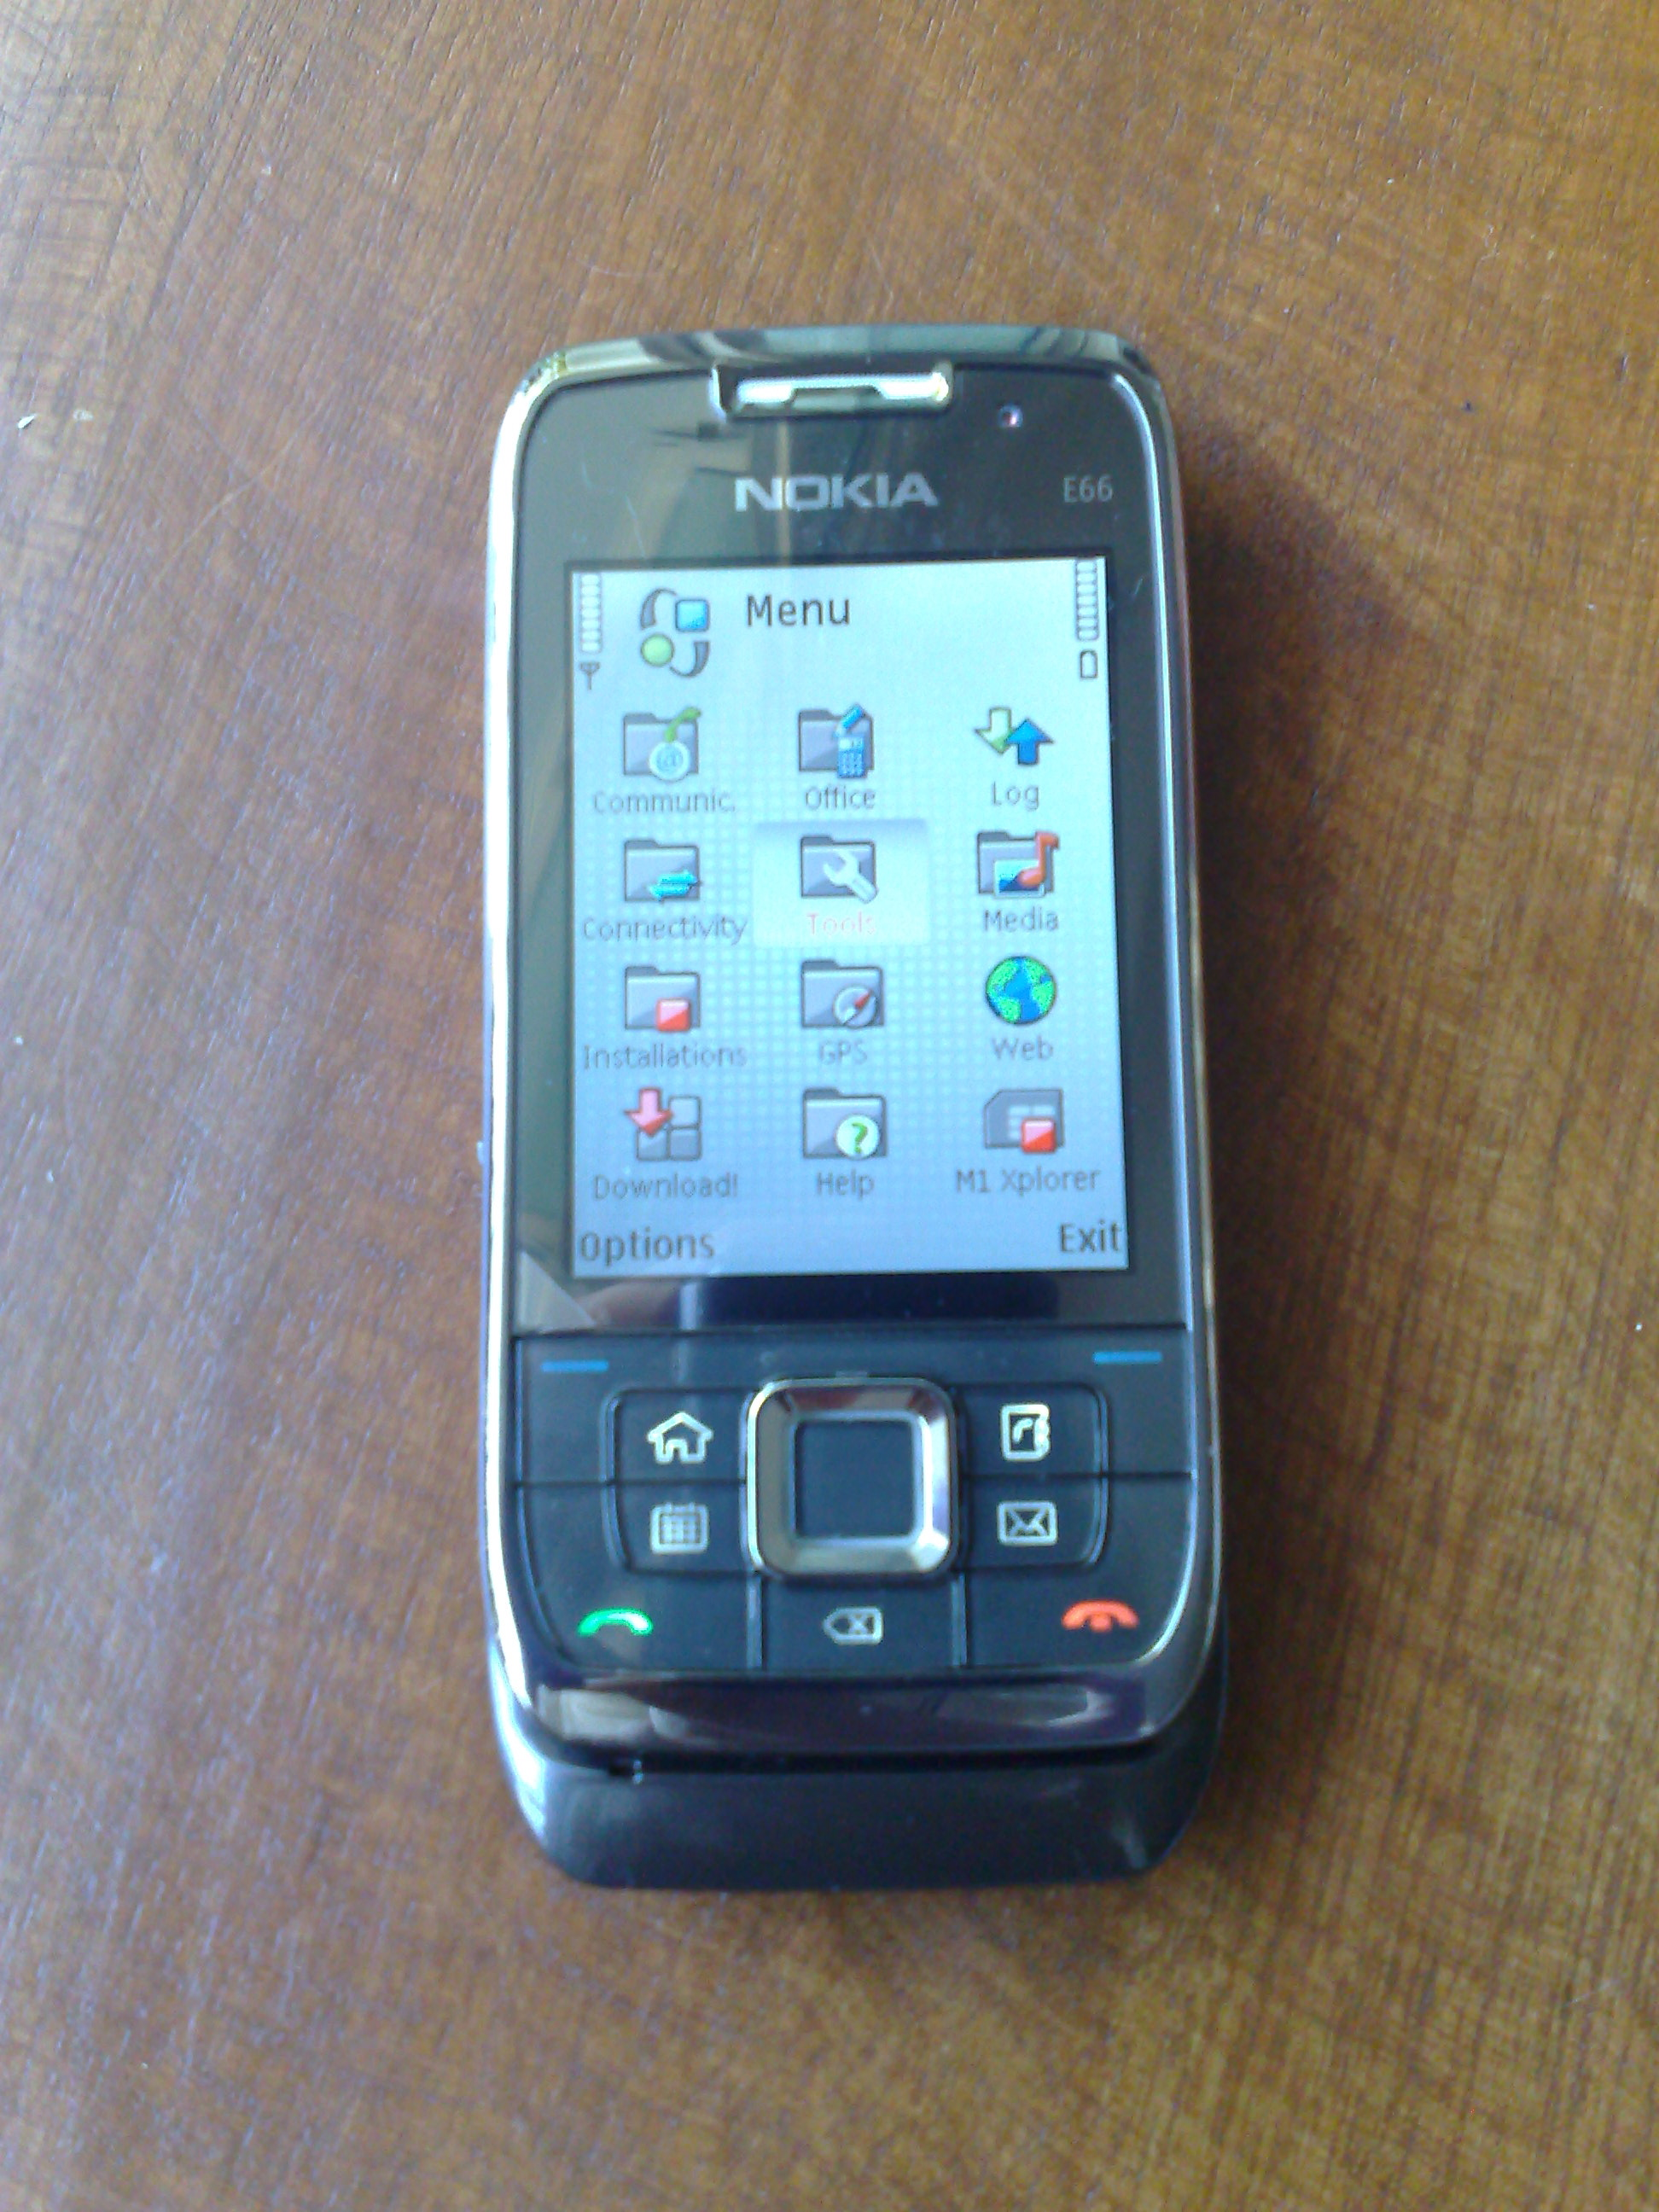 Nokia E66 Business Moblie Phone